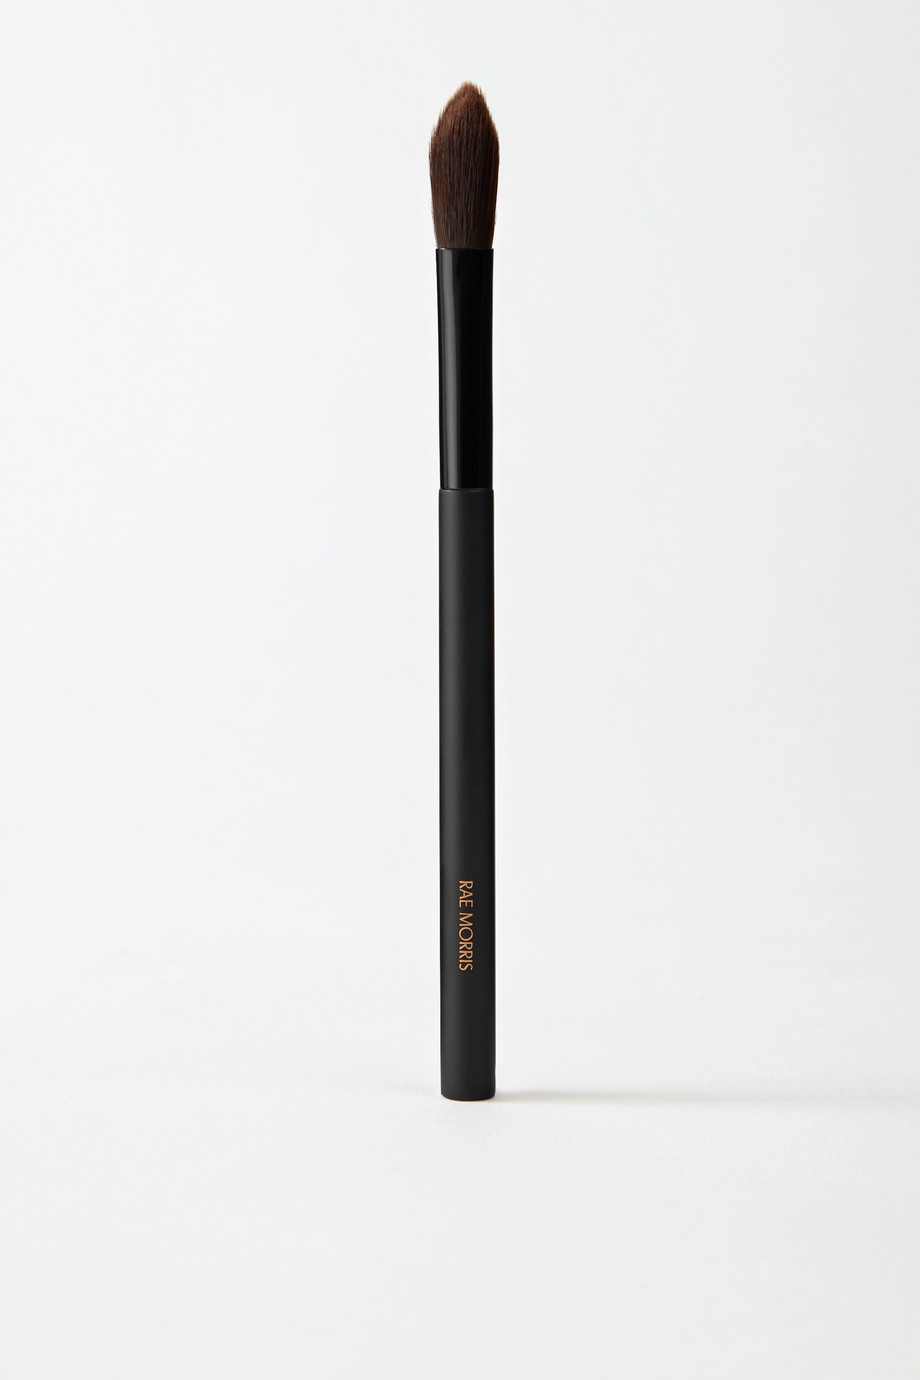 RAE MORRIS Jishaku 7 Vegan Deluxe Point Shader Brush